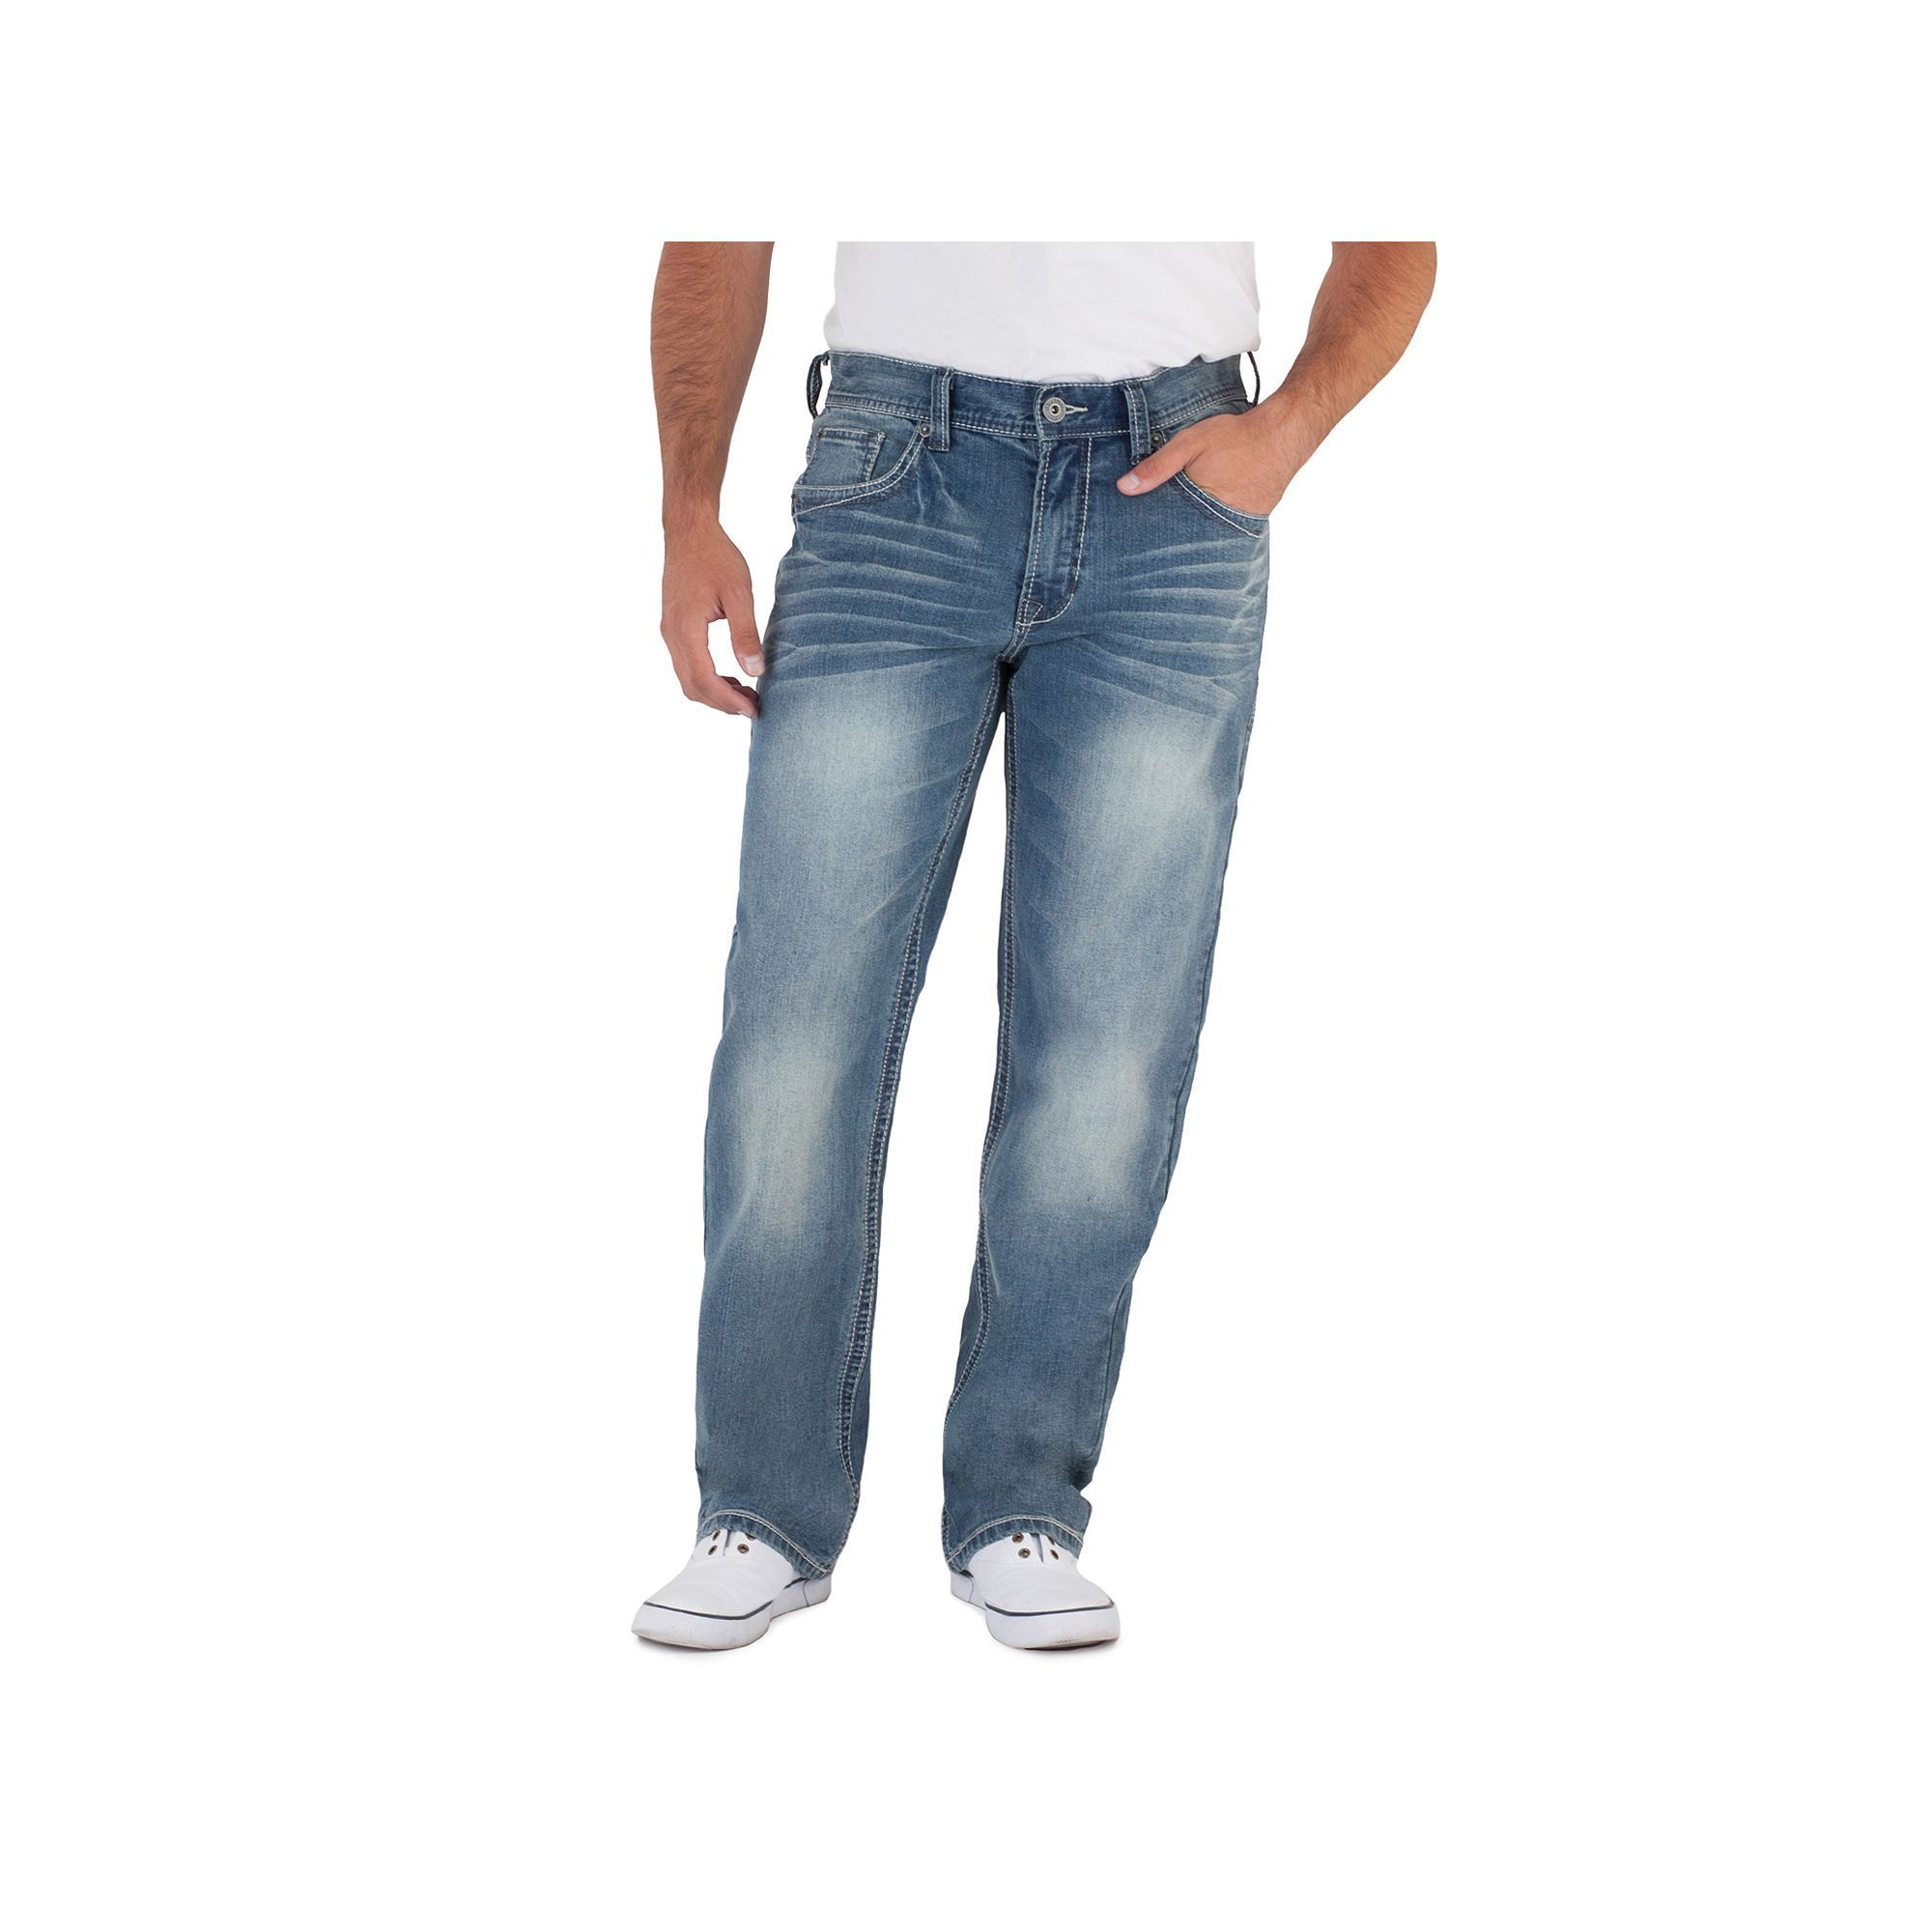 02b0f668 Men's Axe & Crown Stretch Relaxed Straight Jeans, Size: 36X34, Dark Blue